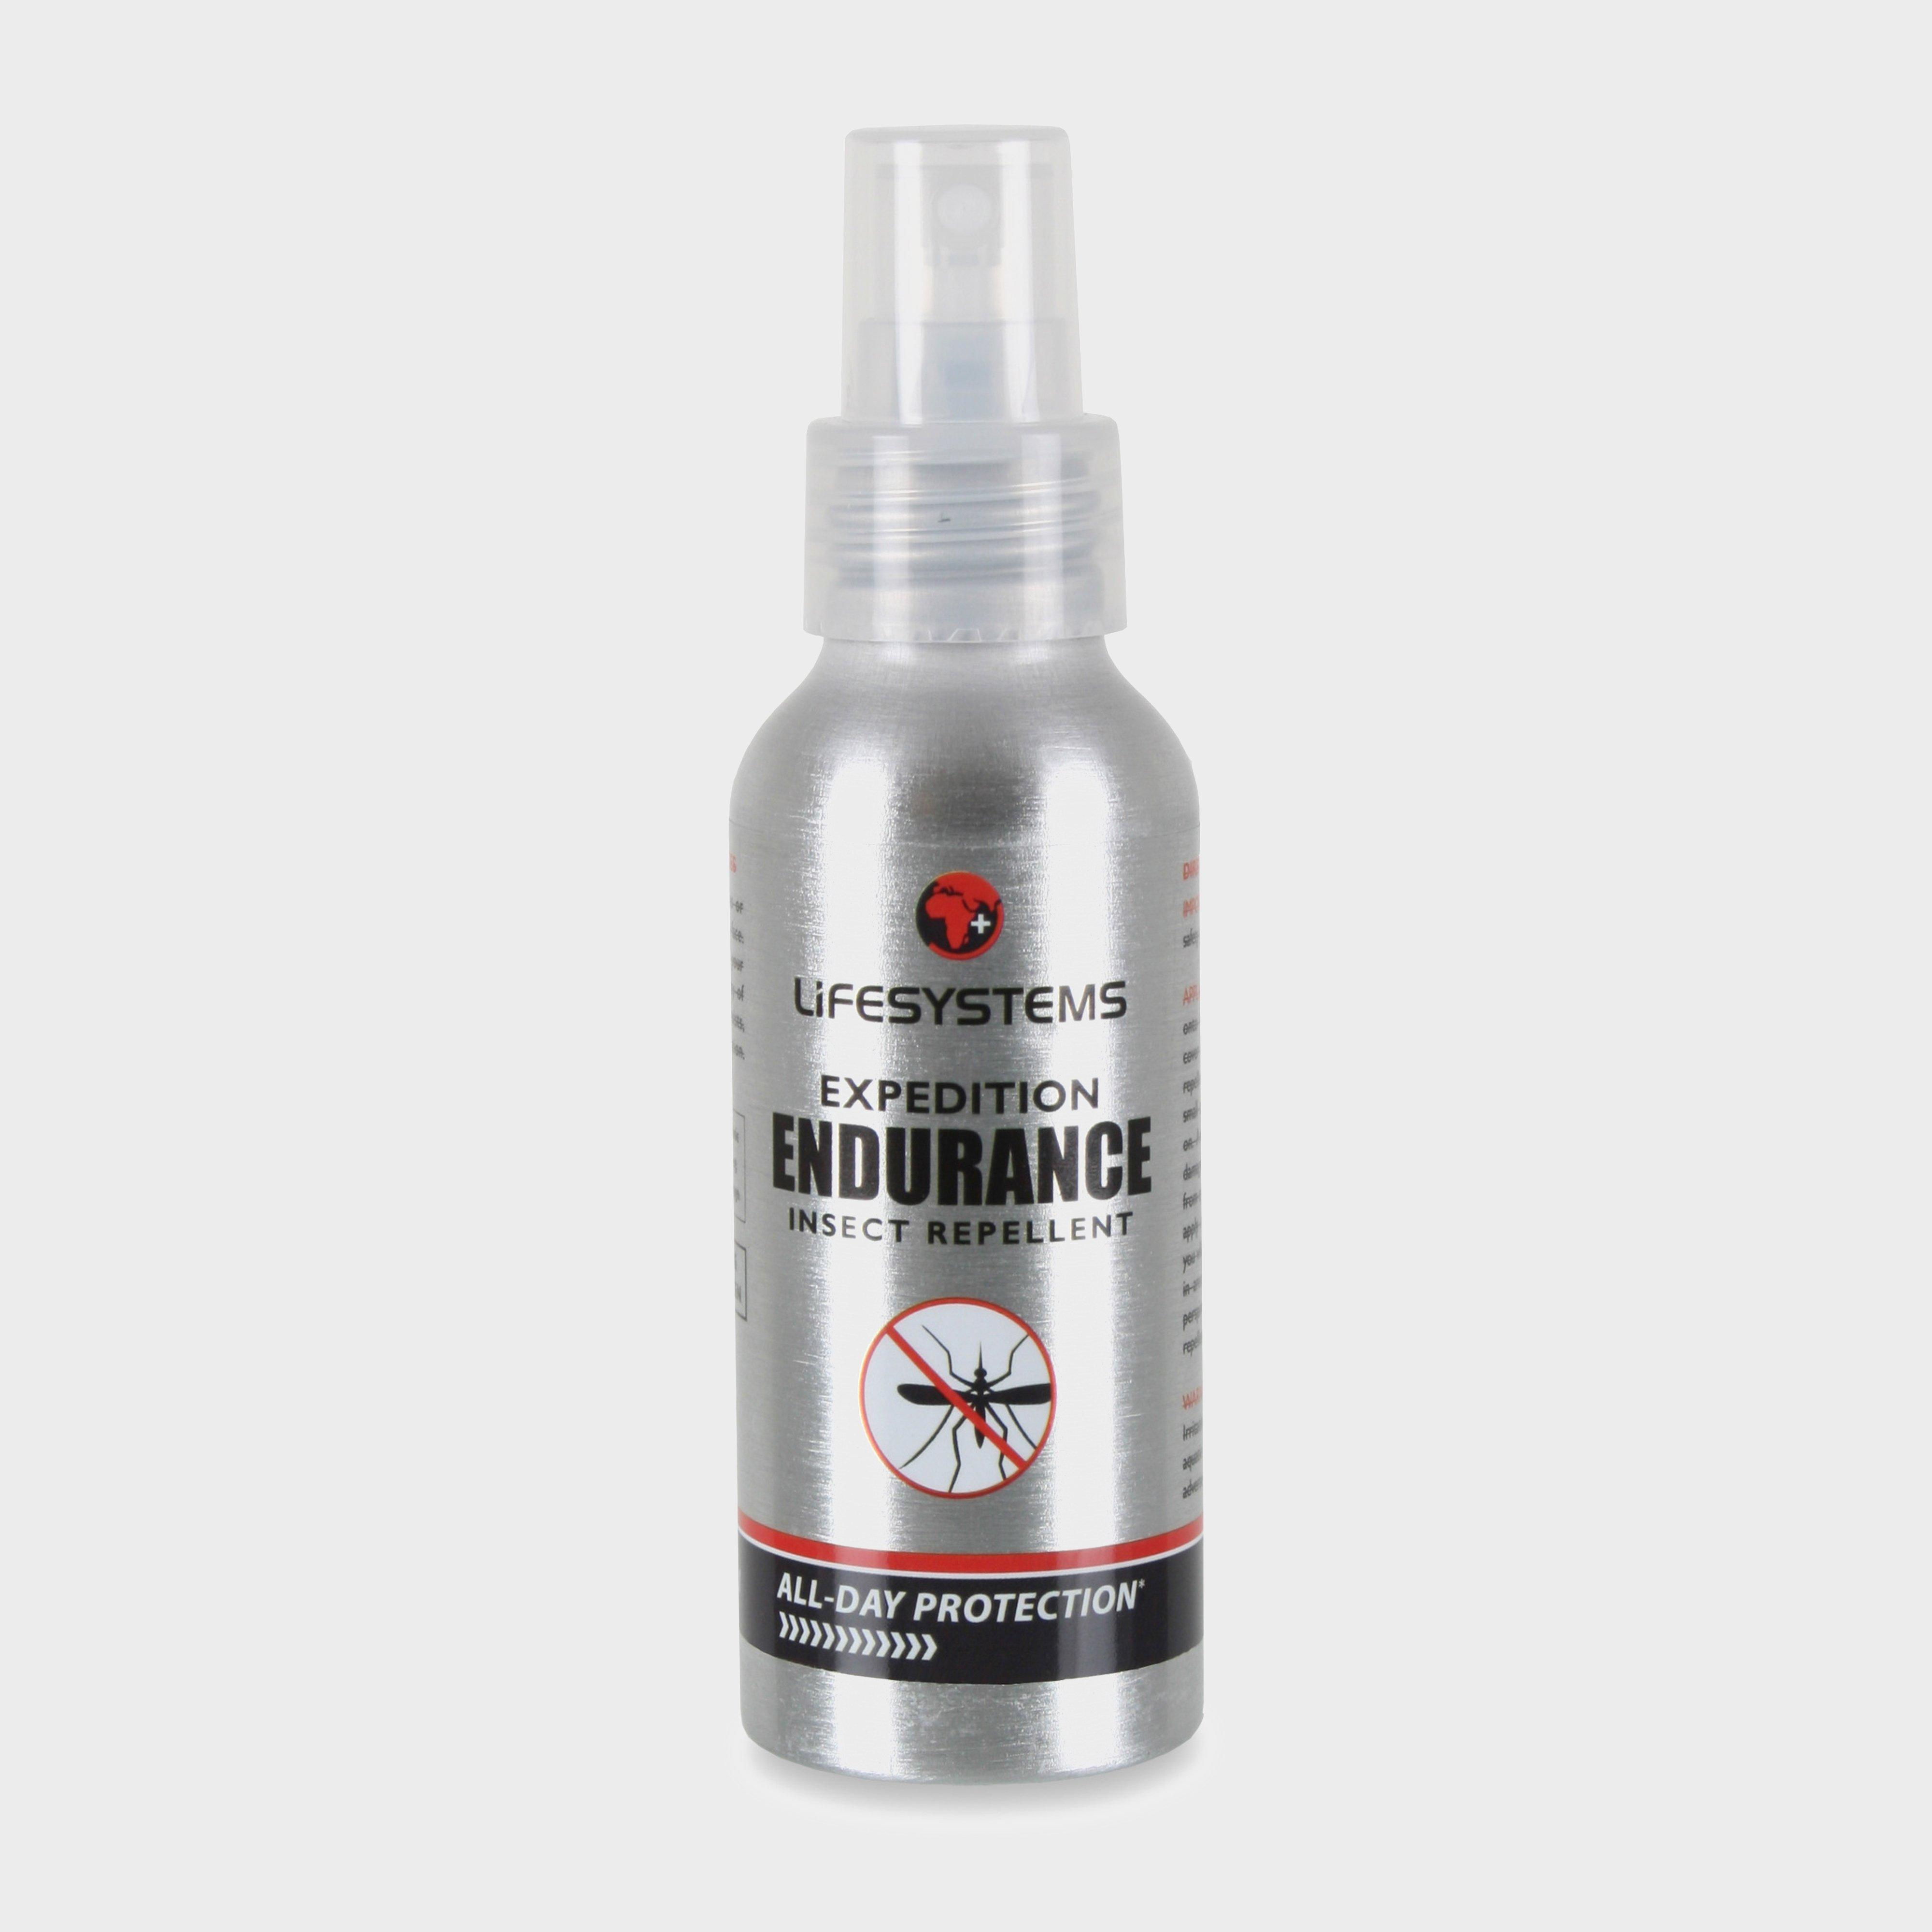 Lifesystems Lifesystems Expedition Endurance Insect Repellent Spray (100ml)